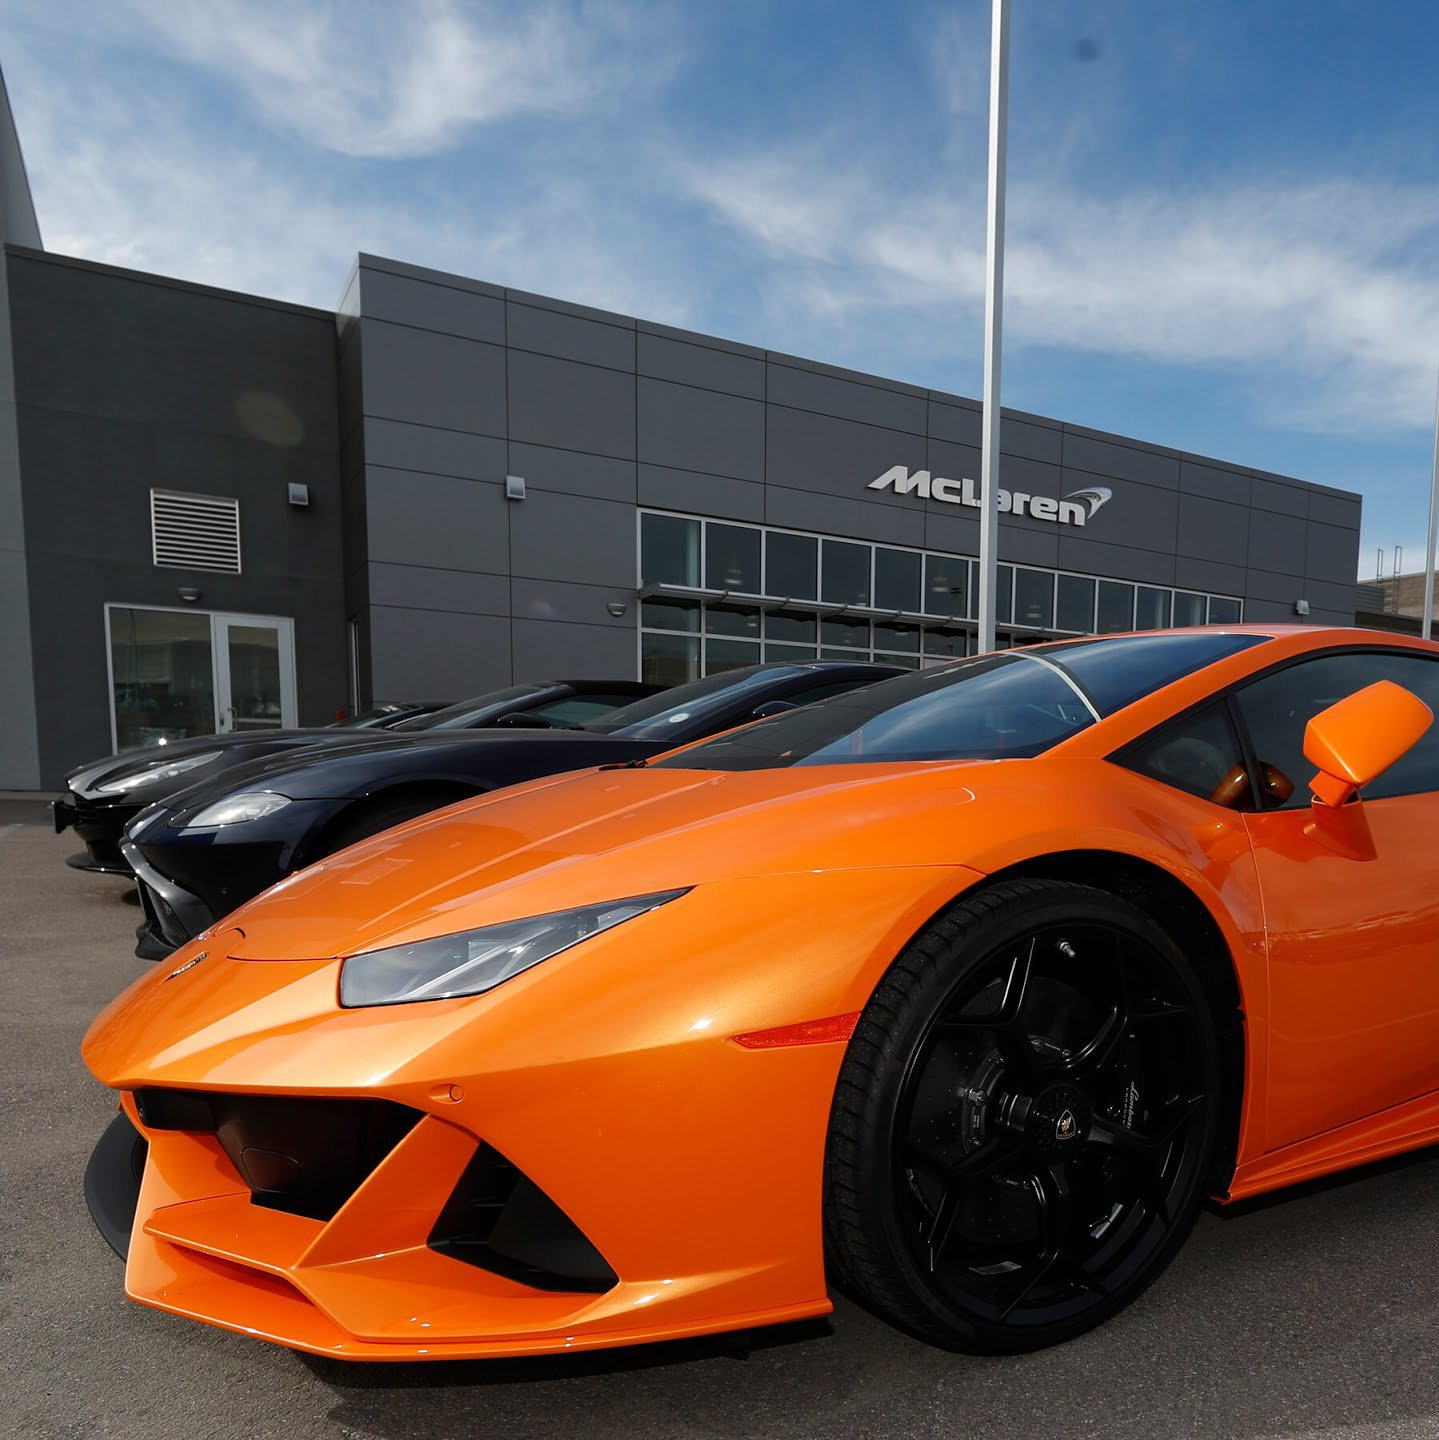 Man arrested for using Covid-19 loans to buy Lamborghini